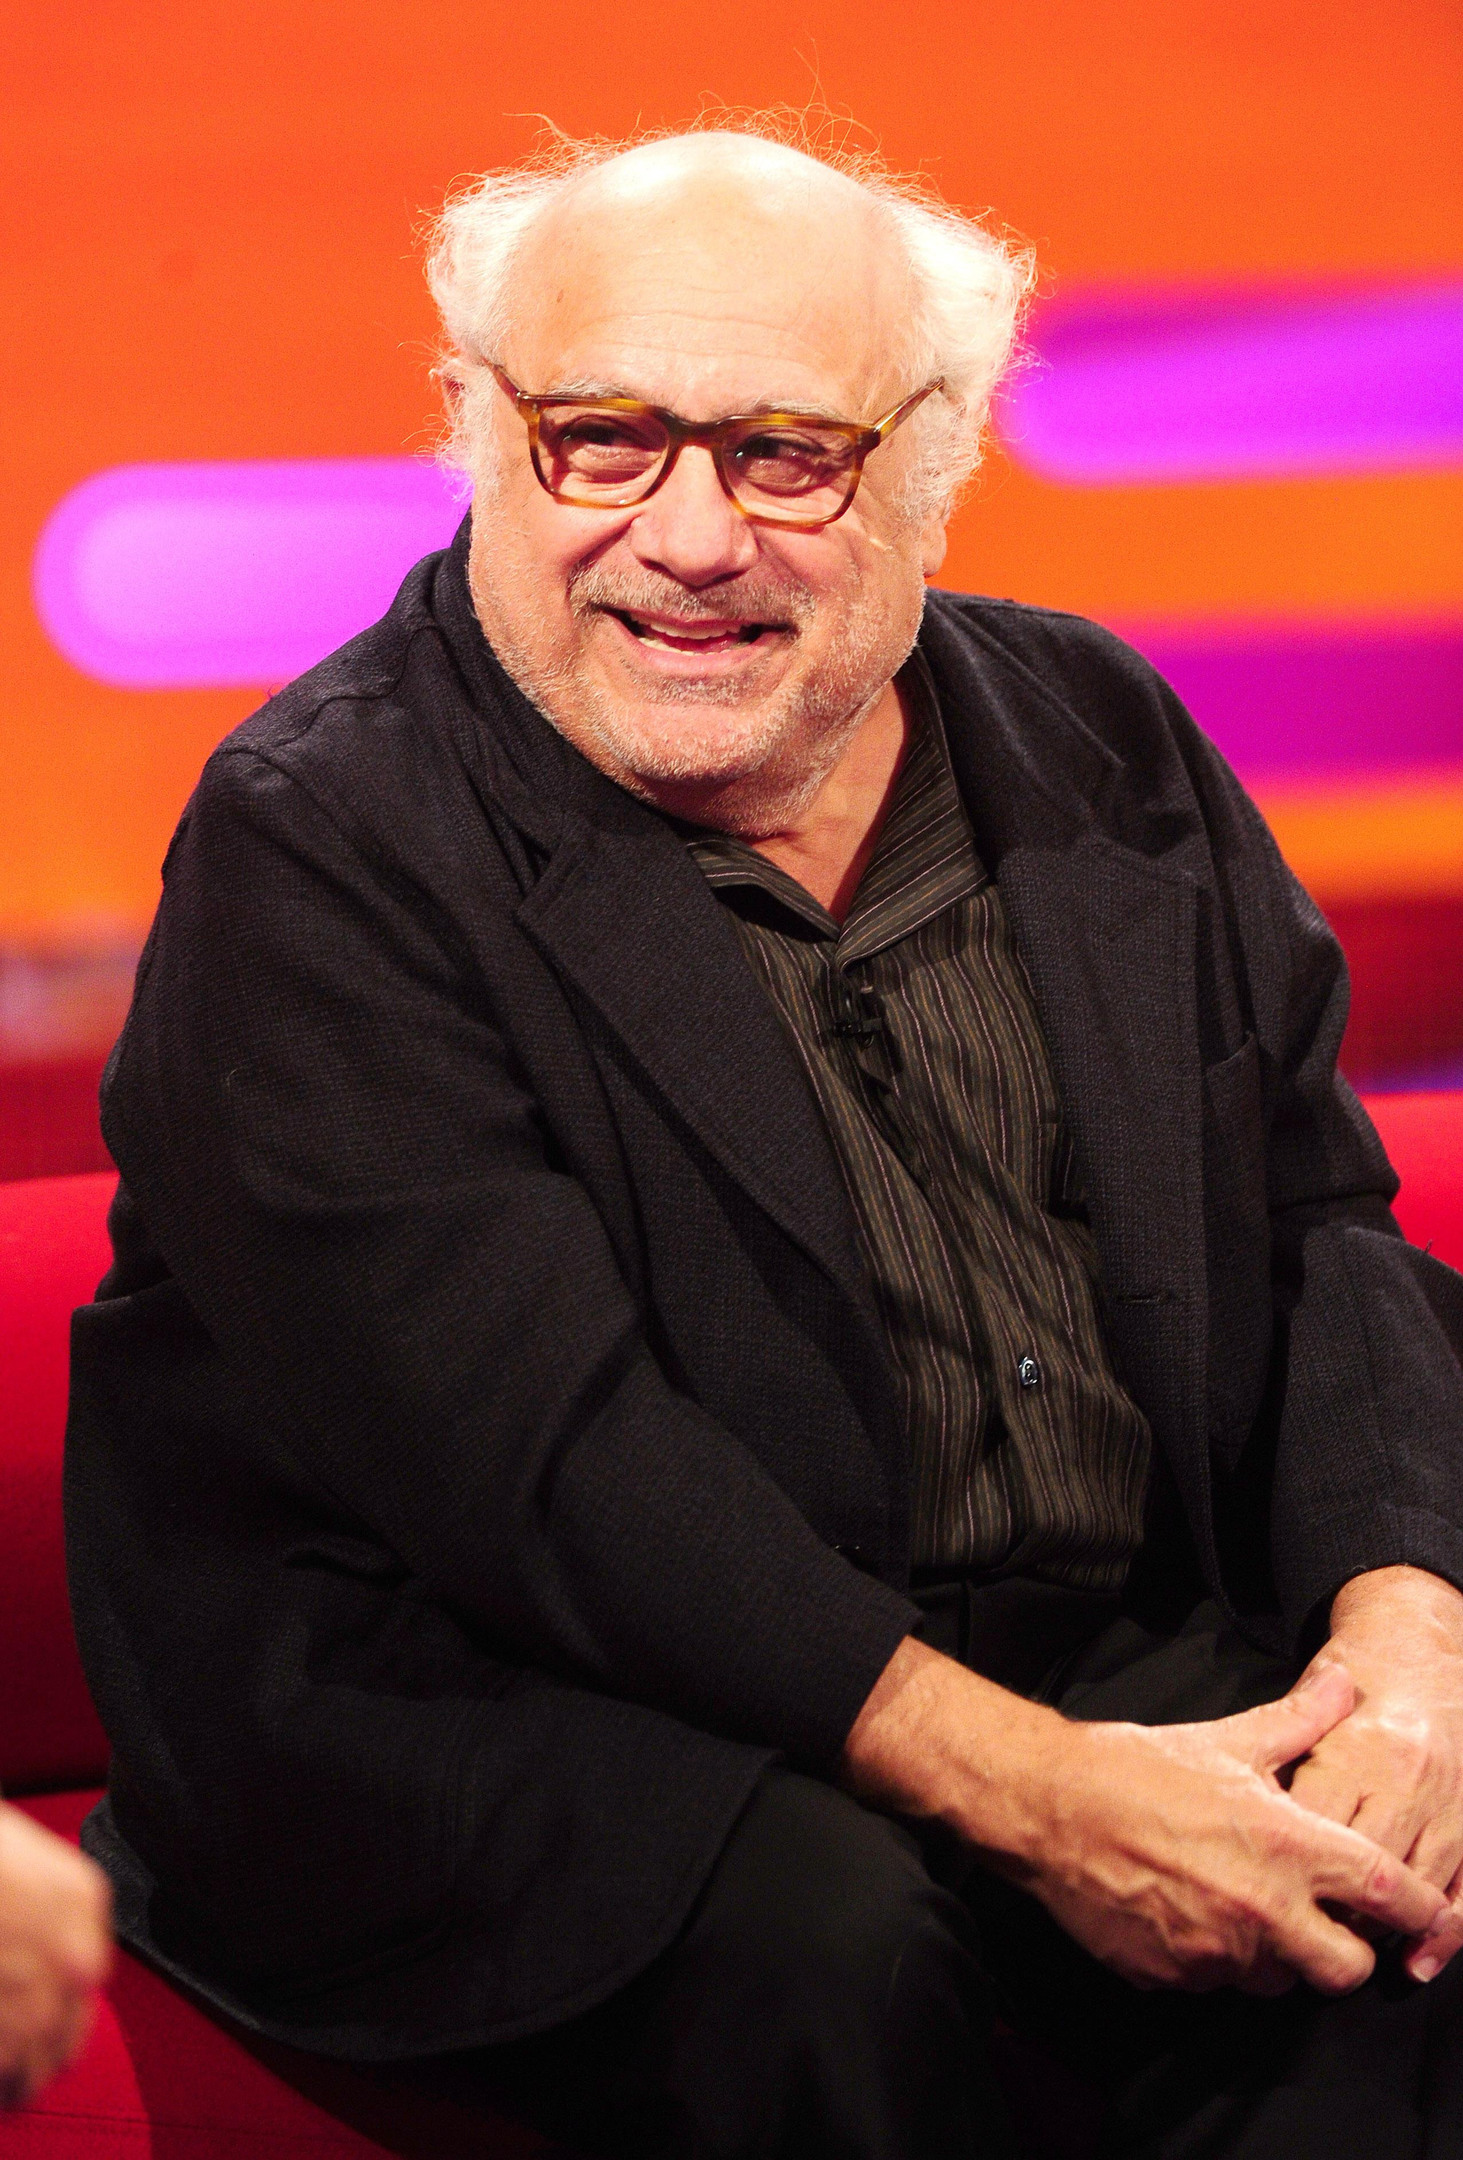 Danny Devito during filming of The Graham Norton Show